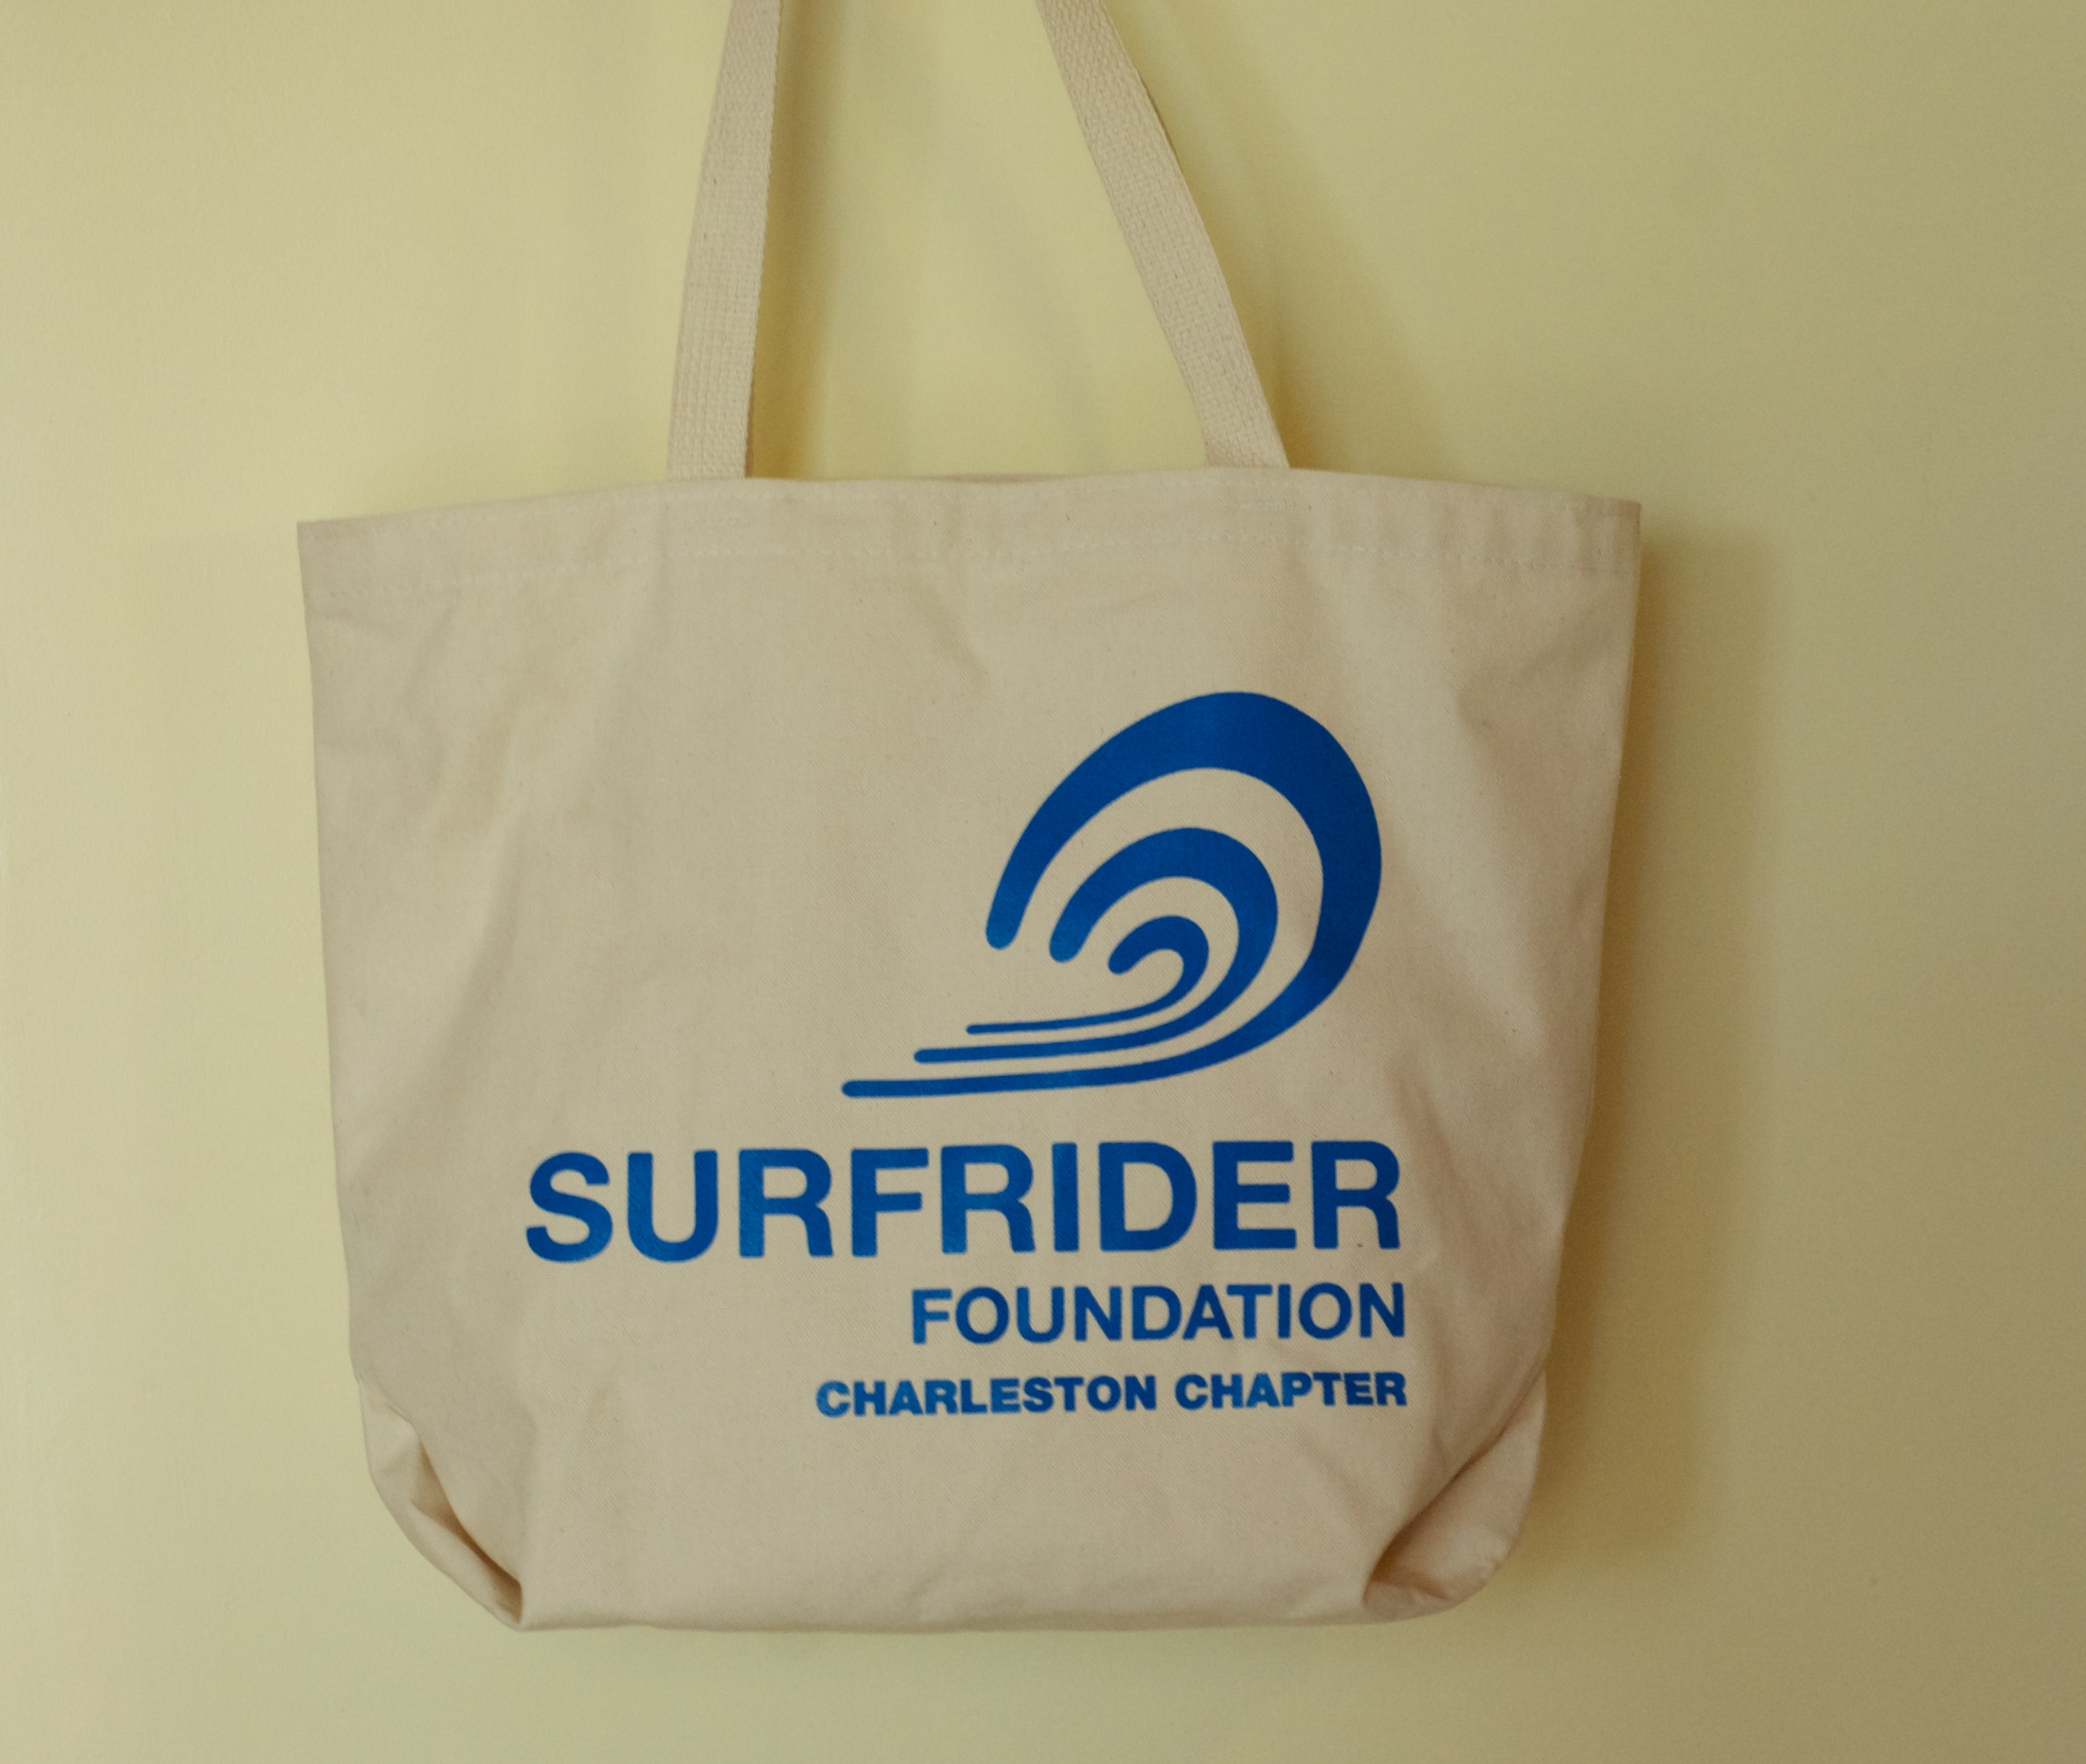 New Re-usable Shopping Bags